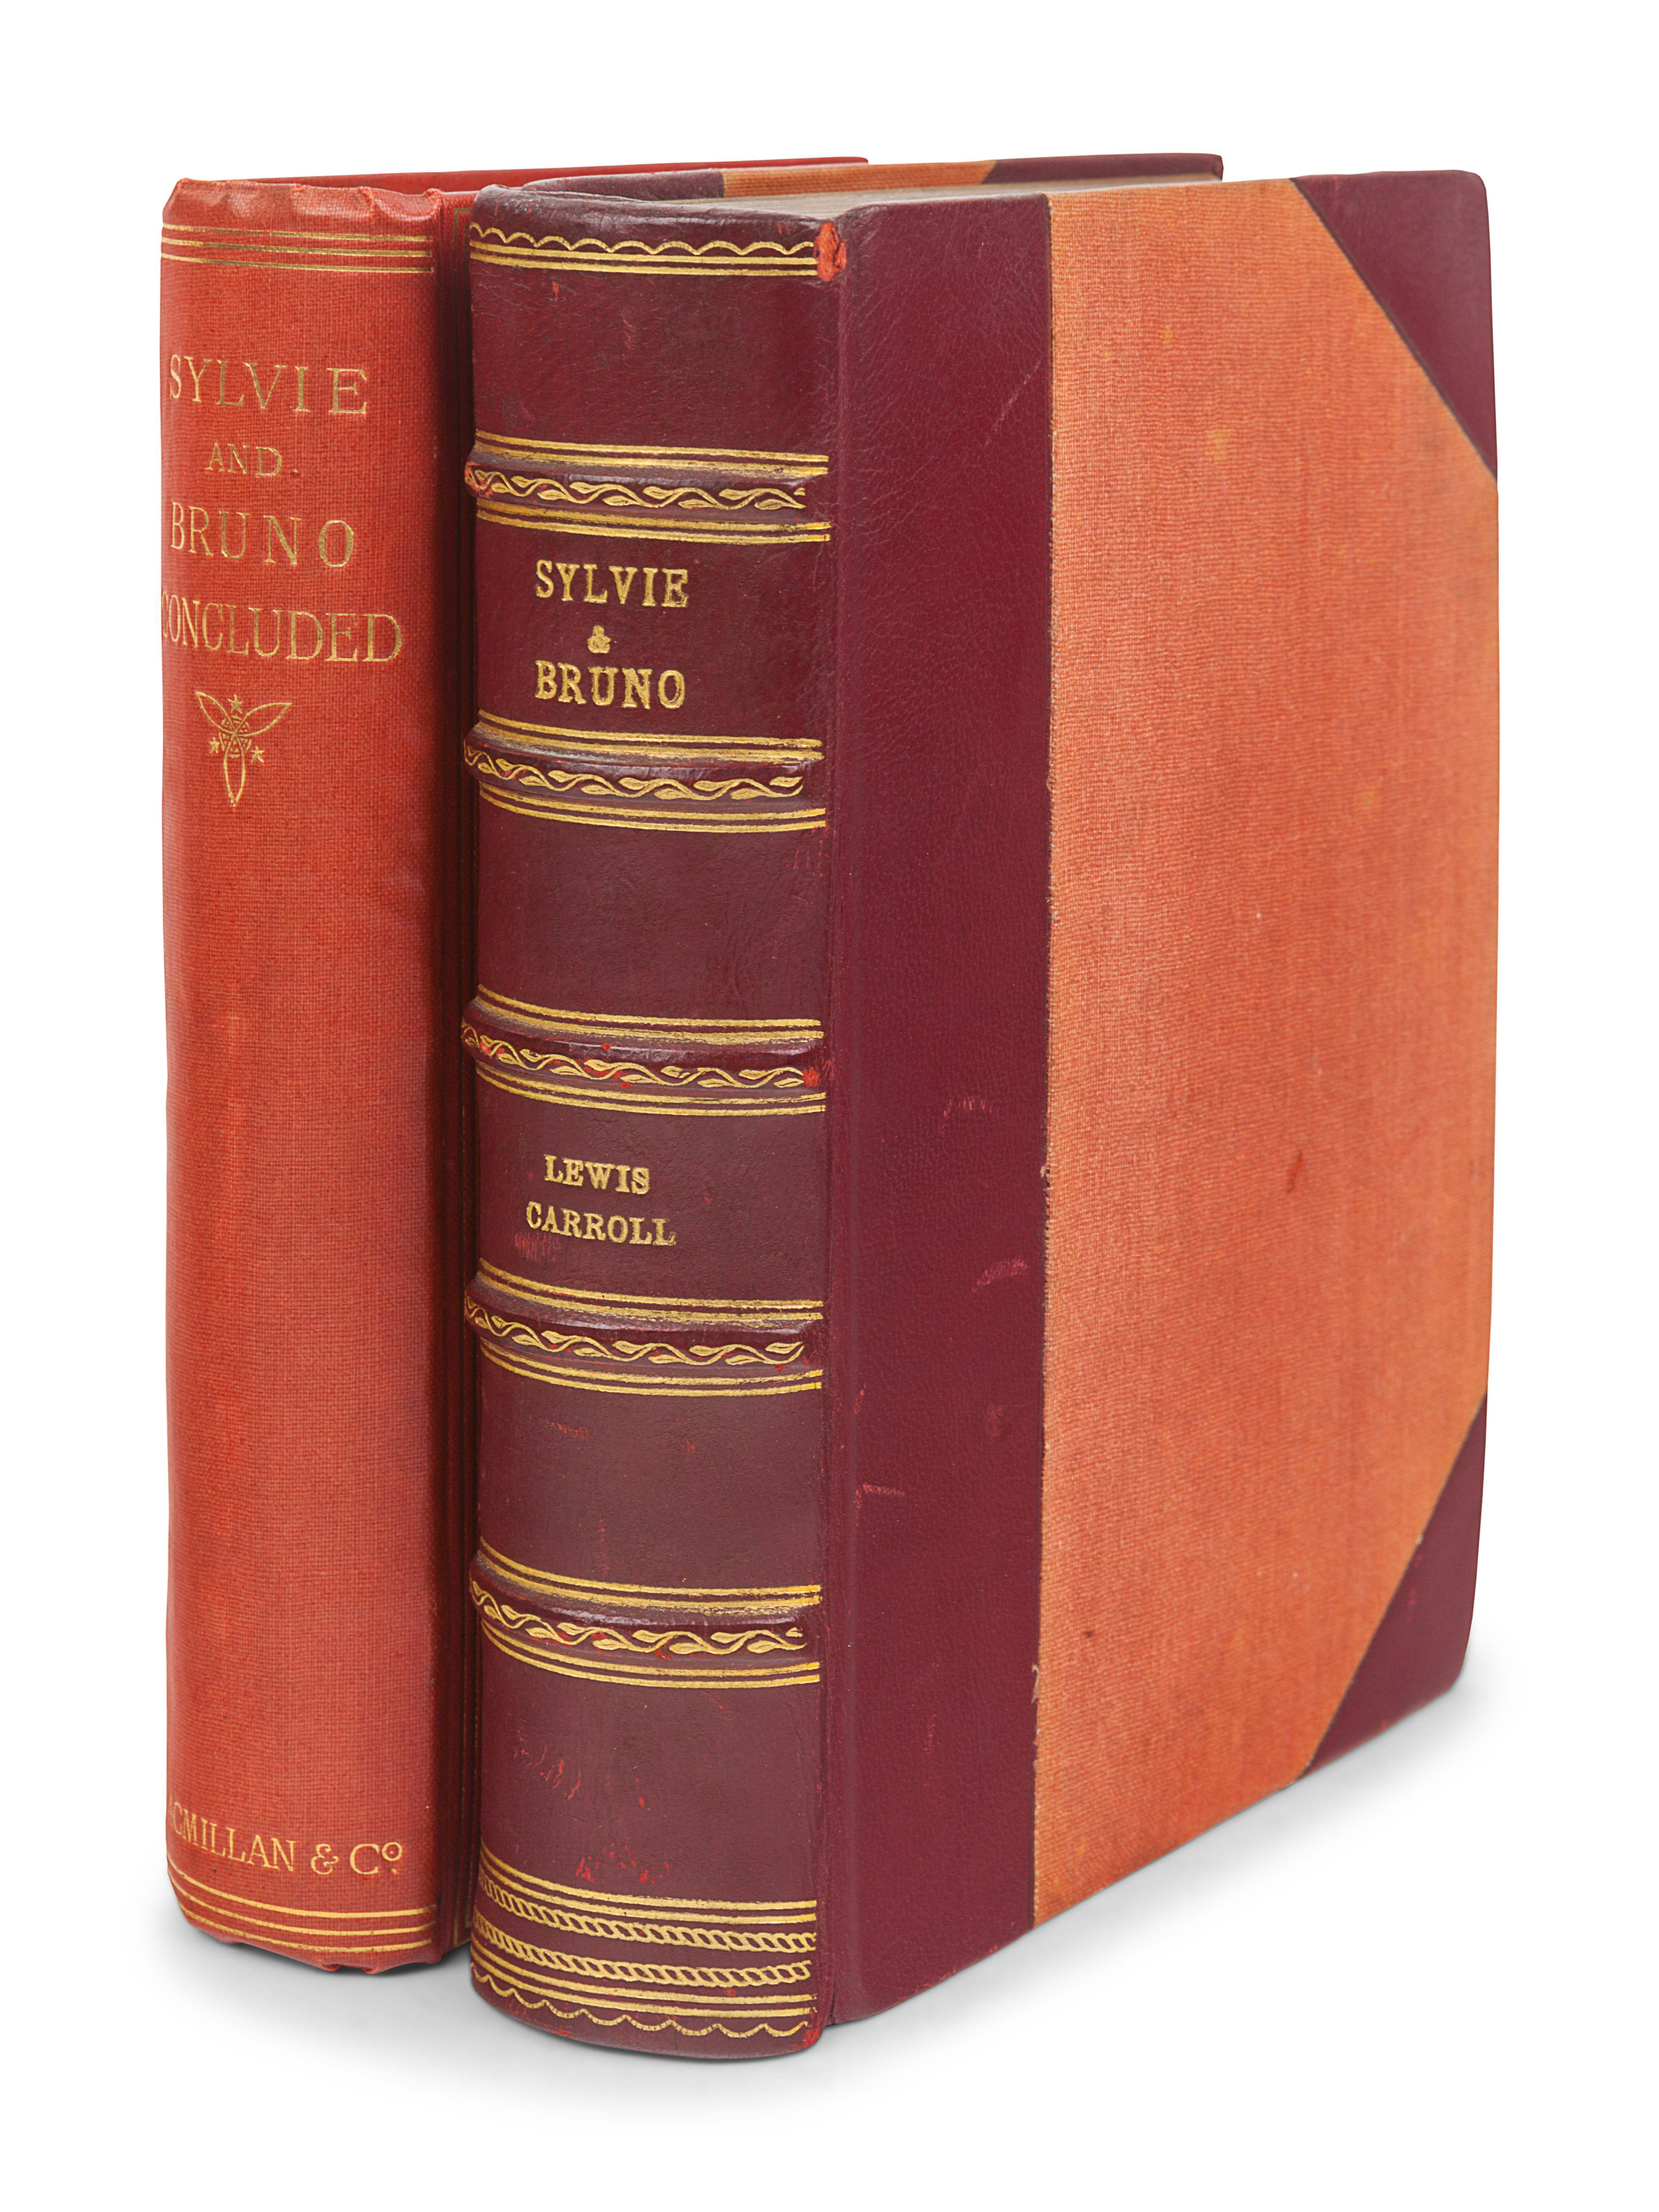 """DODGSON, Charles Lutwidge (""""Lewis Carroll"""") (1832-1898). Sylvie and Bruno. London: Macmillan and Co. - Image 3 of 3"""